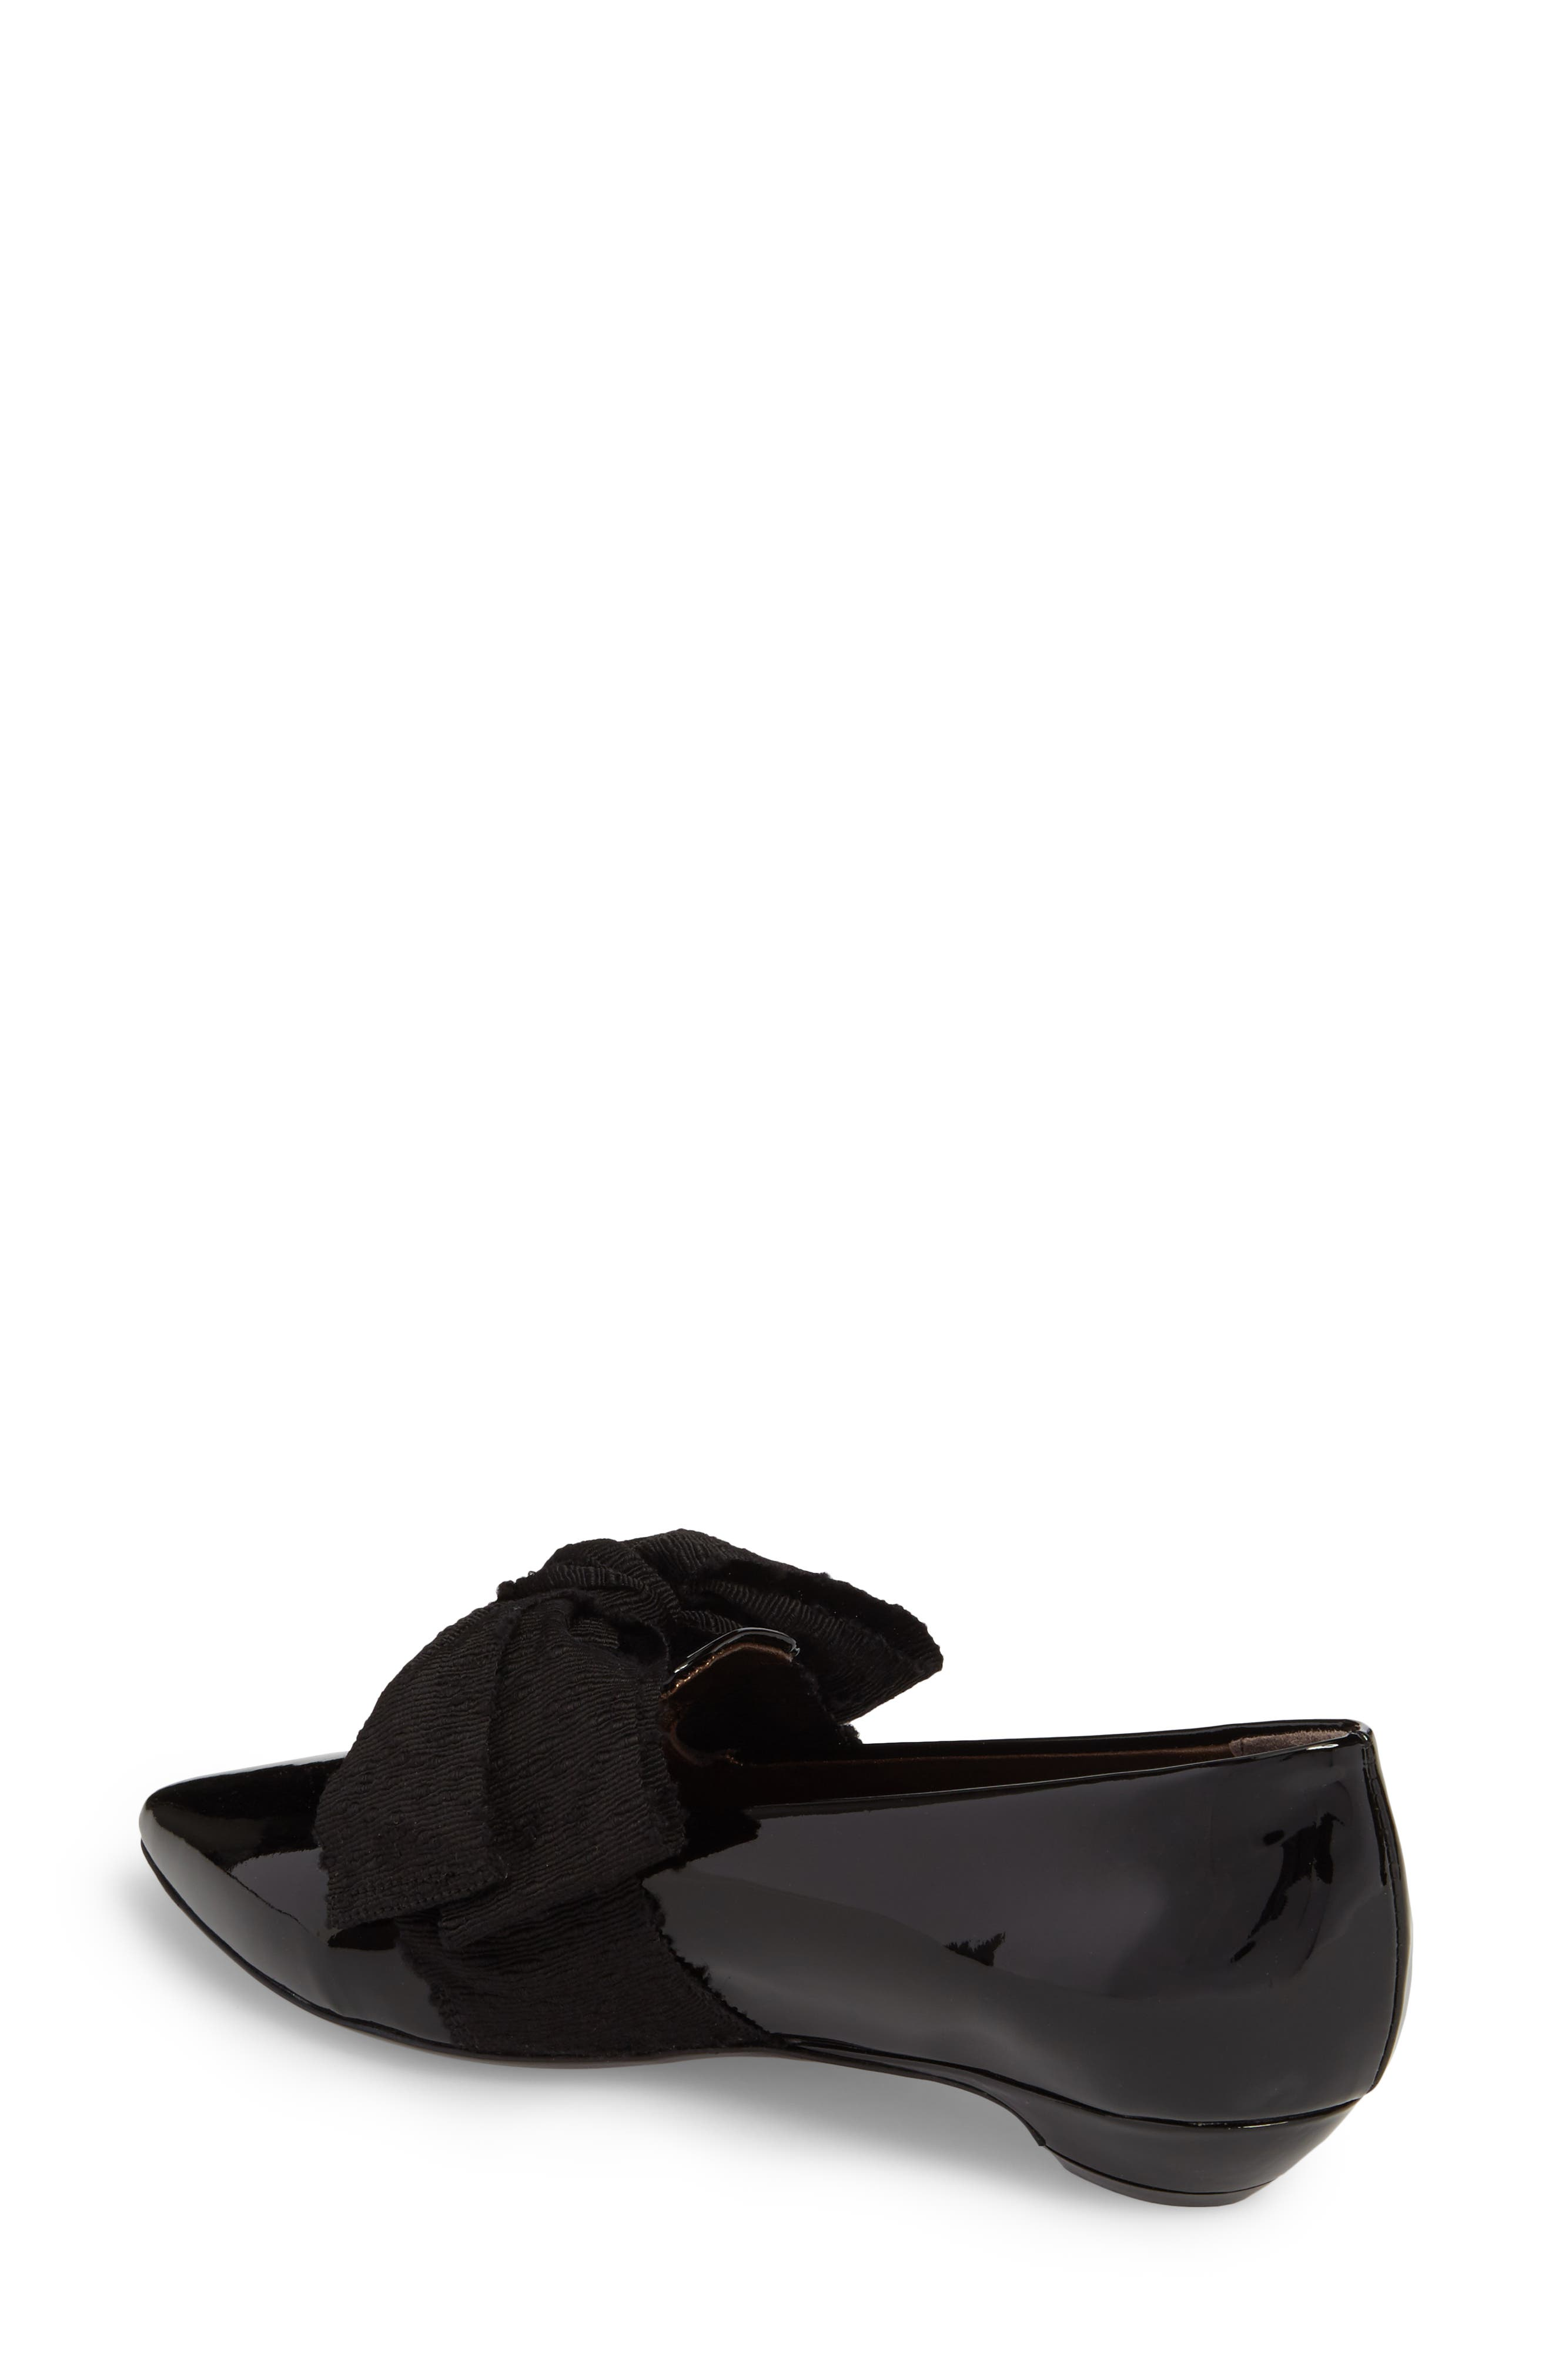 Maggie Bow Loafer,                             Alternate thumbnail 2, color,                             Black Patent